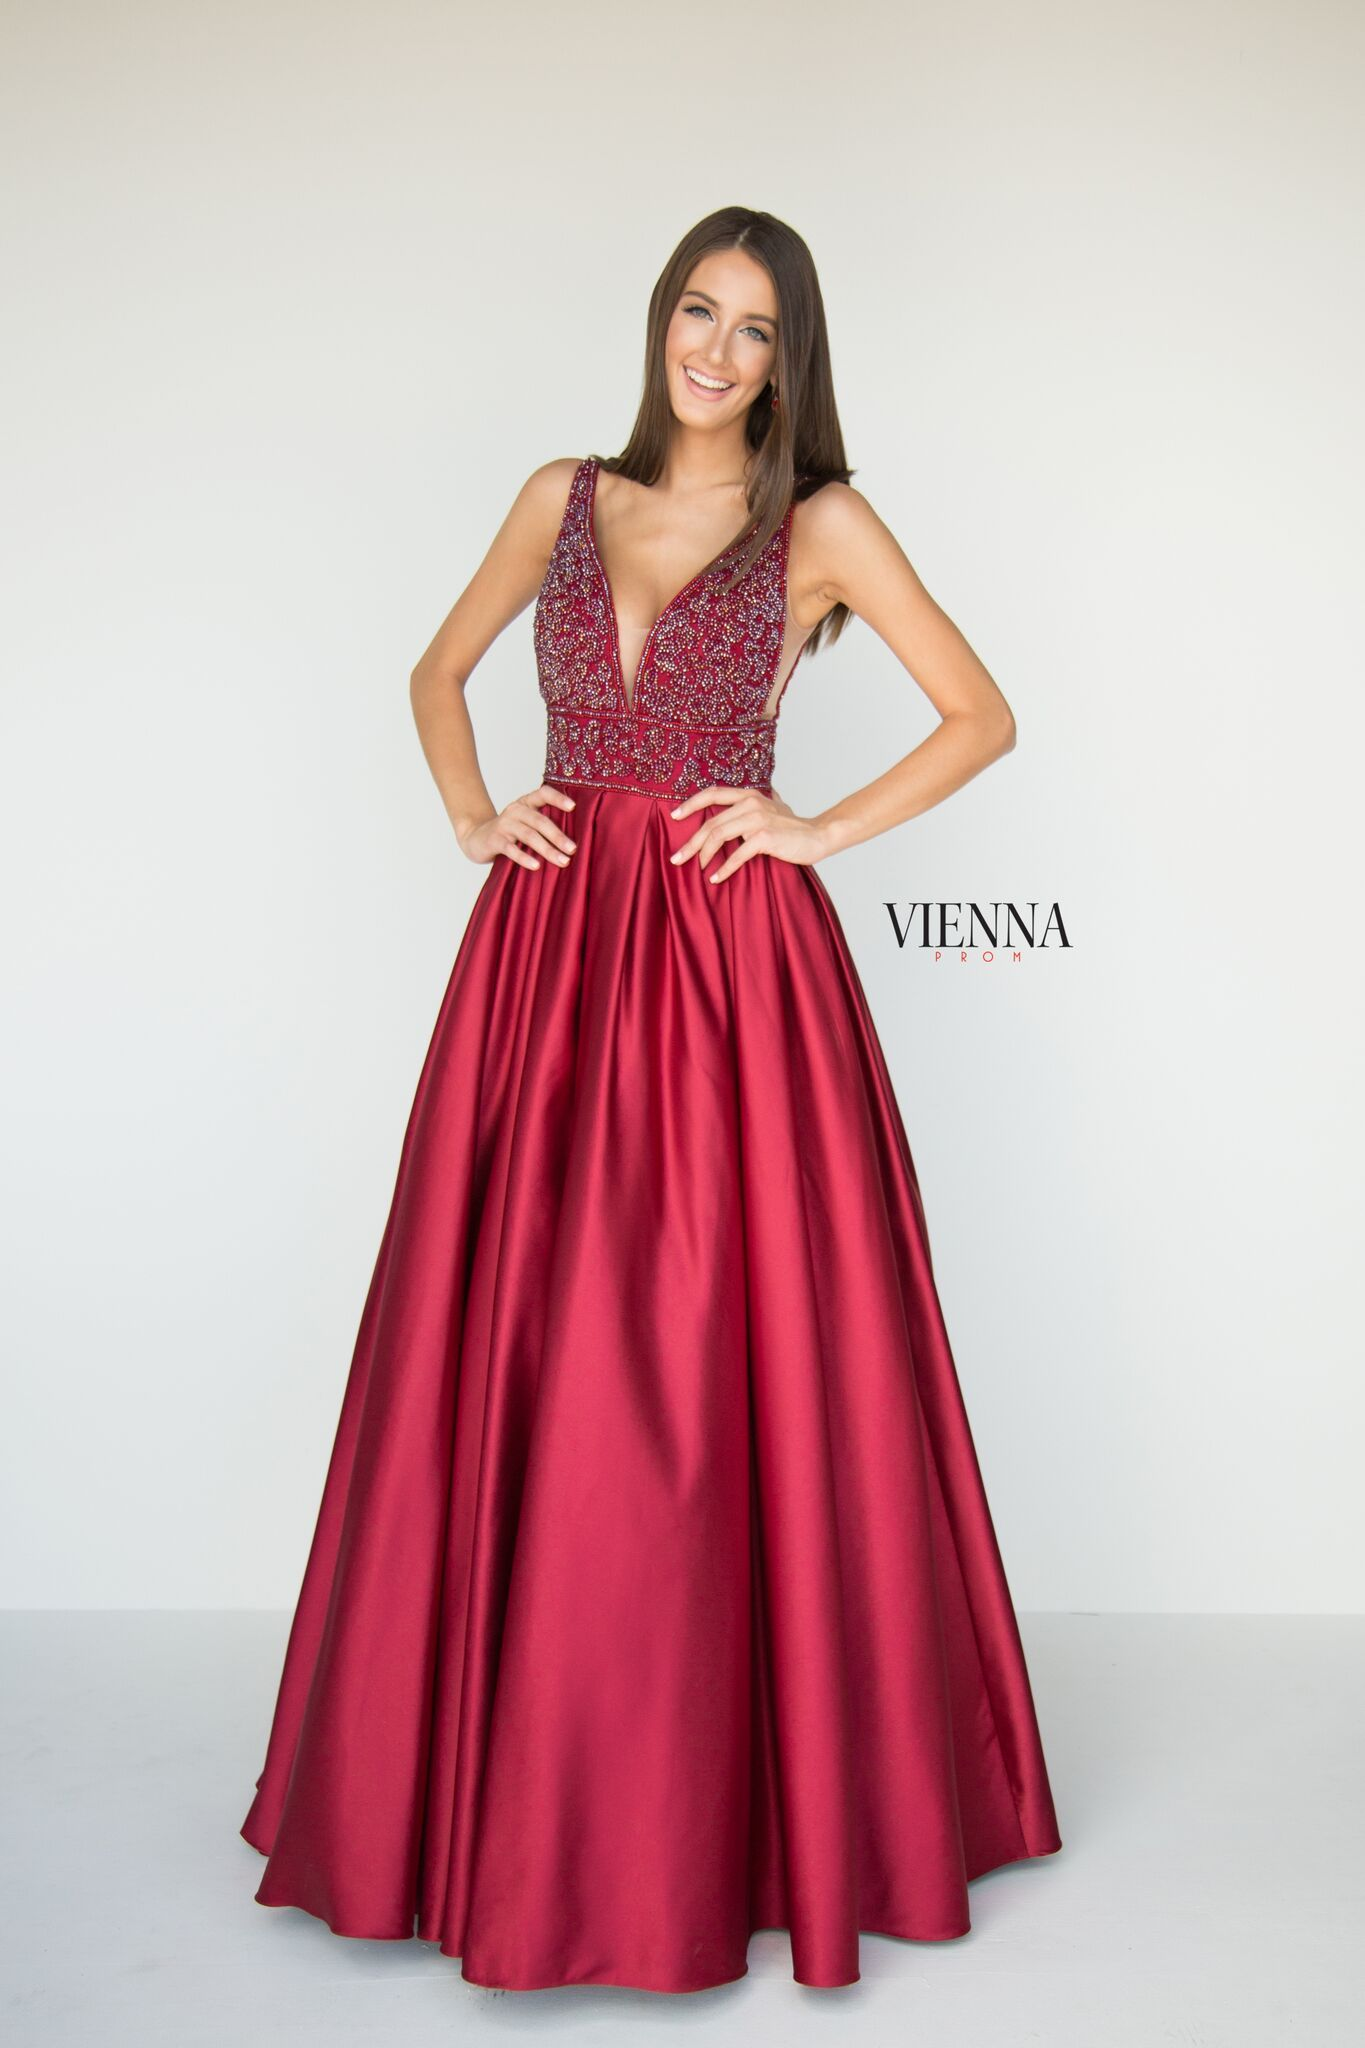 Vienna Prom 7802 Sds Couture Accessories Dresses Prom Boutiques Pageant Wear [ 2048 x 1365 Pixel ]